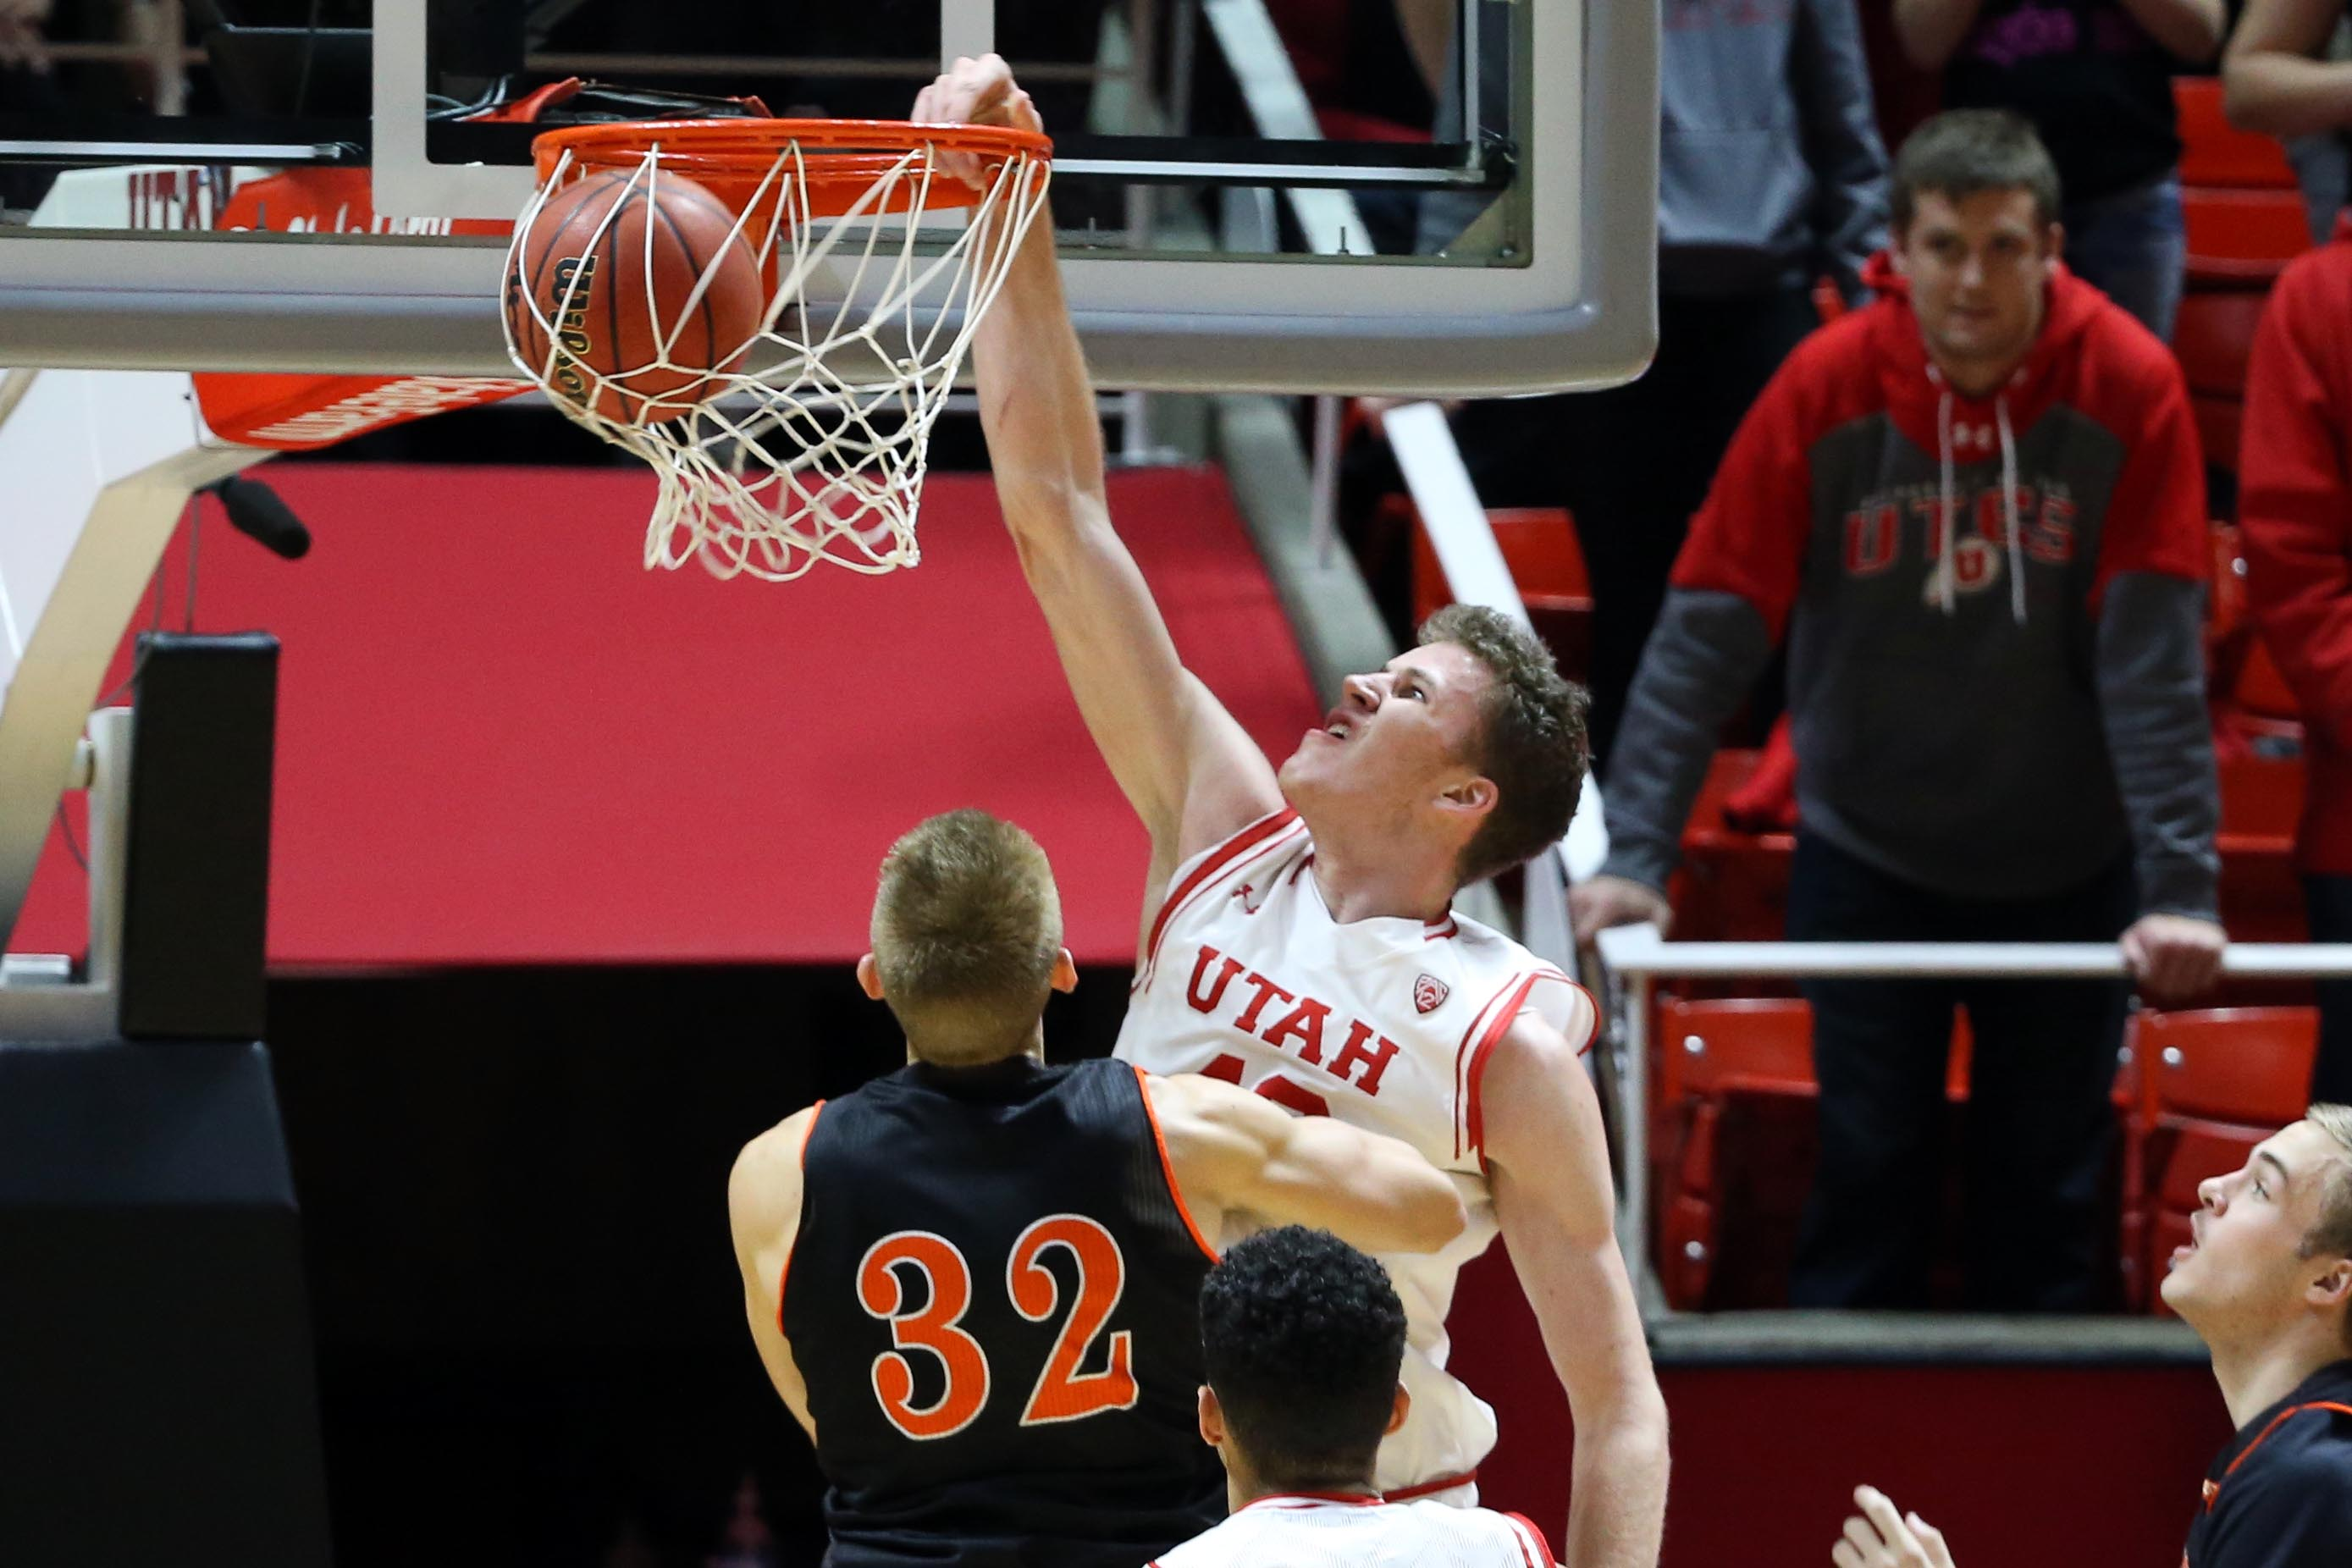 Sophomore center Jakob Poeltl (shown dunking) leads the no. 24 Runnin' Utes with 18 point and 9.7 rebounds per game.